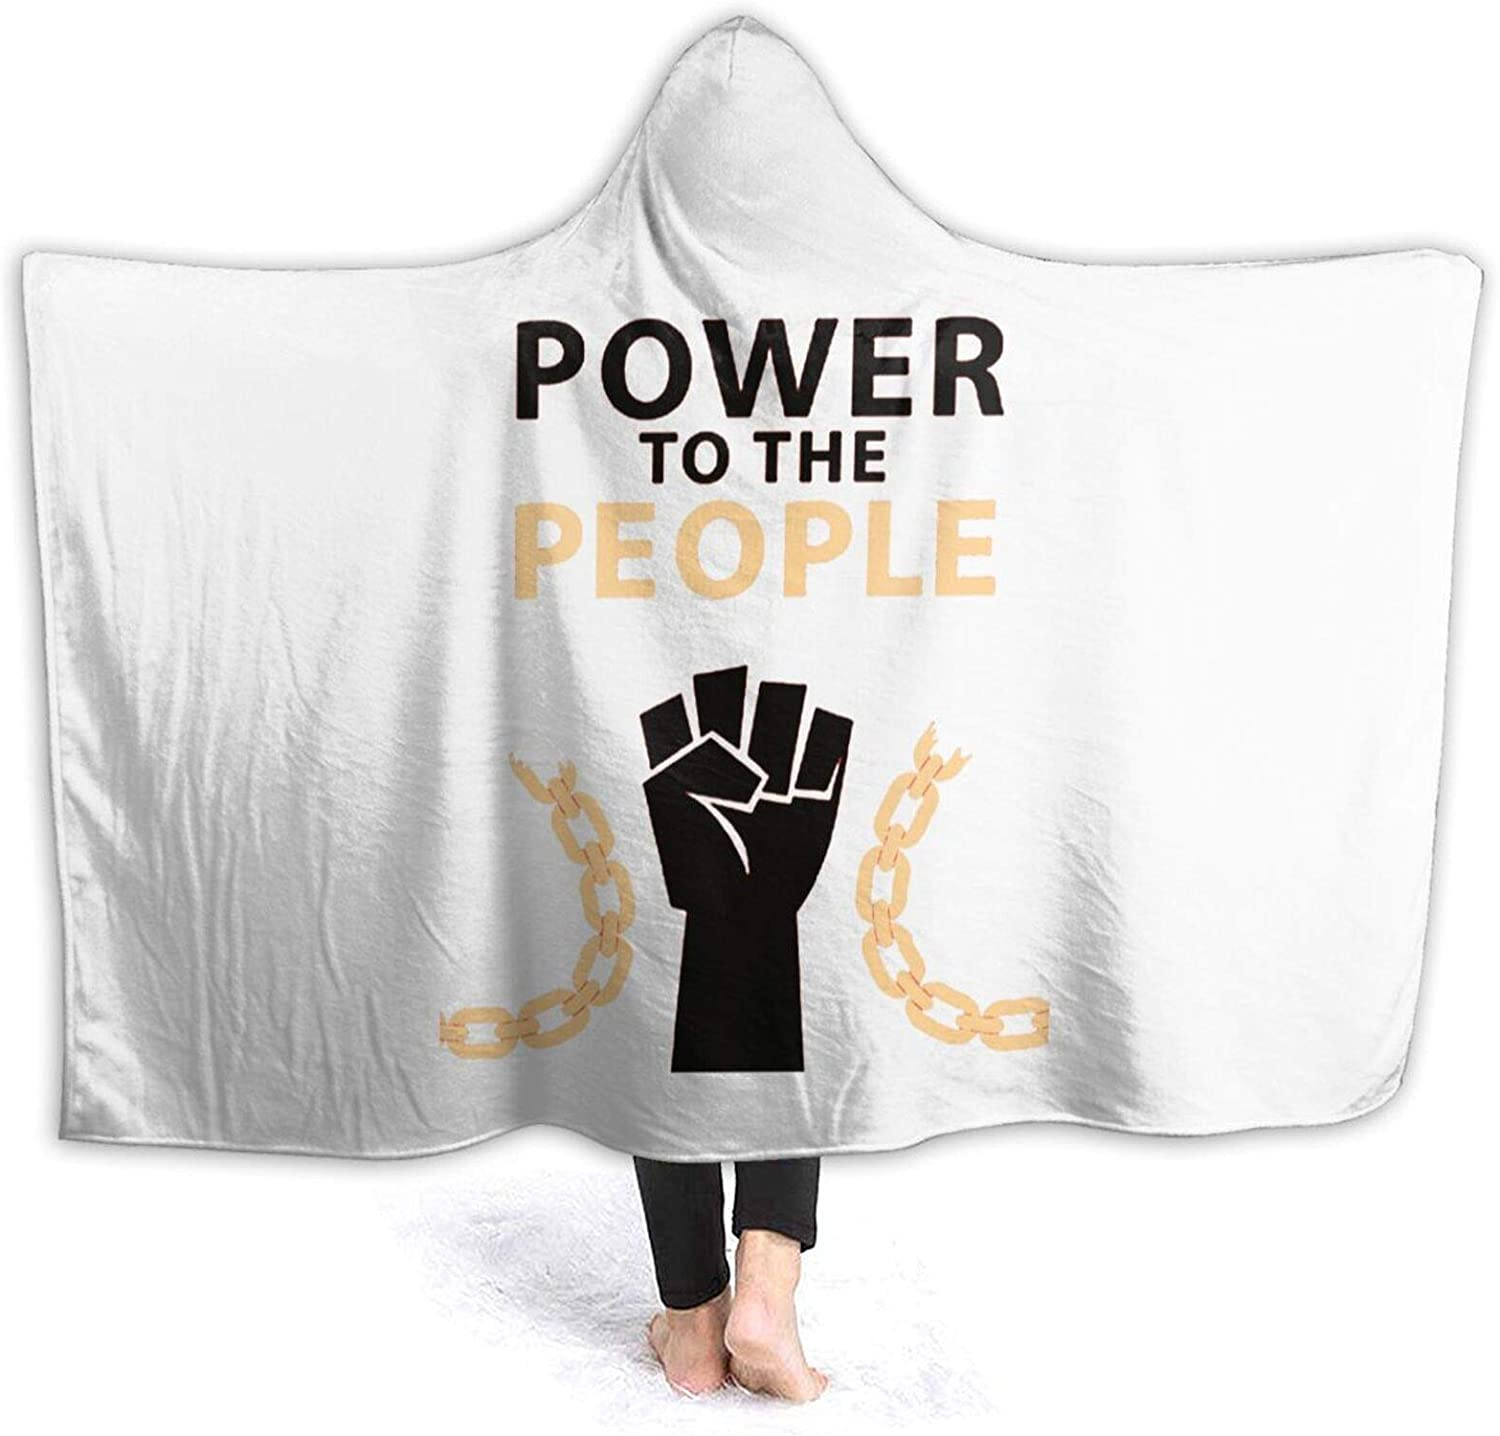 Power to The People Very popular! Wearable Sofa Limited time sale Throw Stylish Blanket